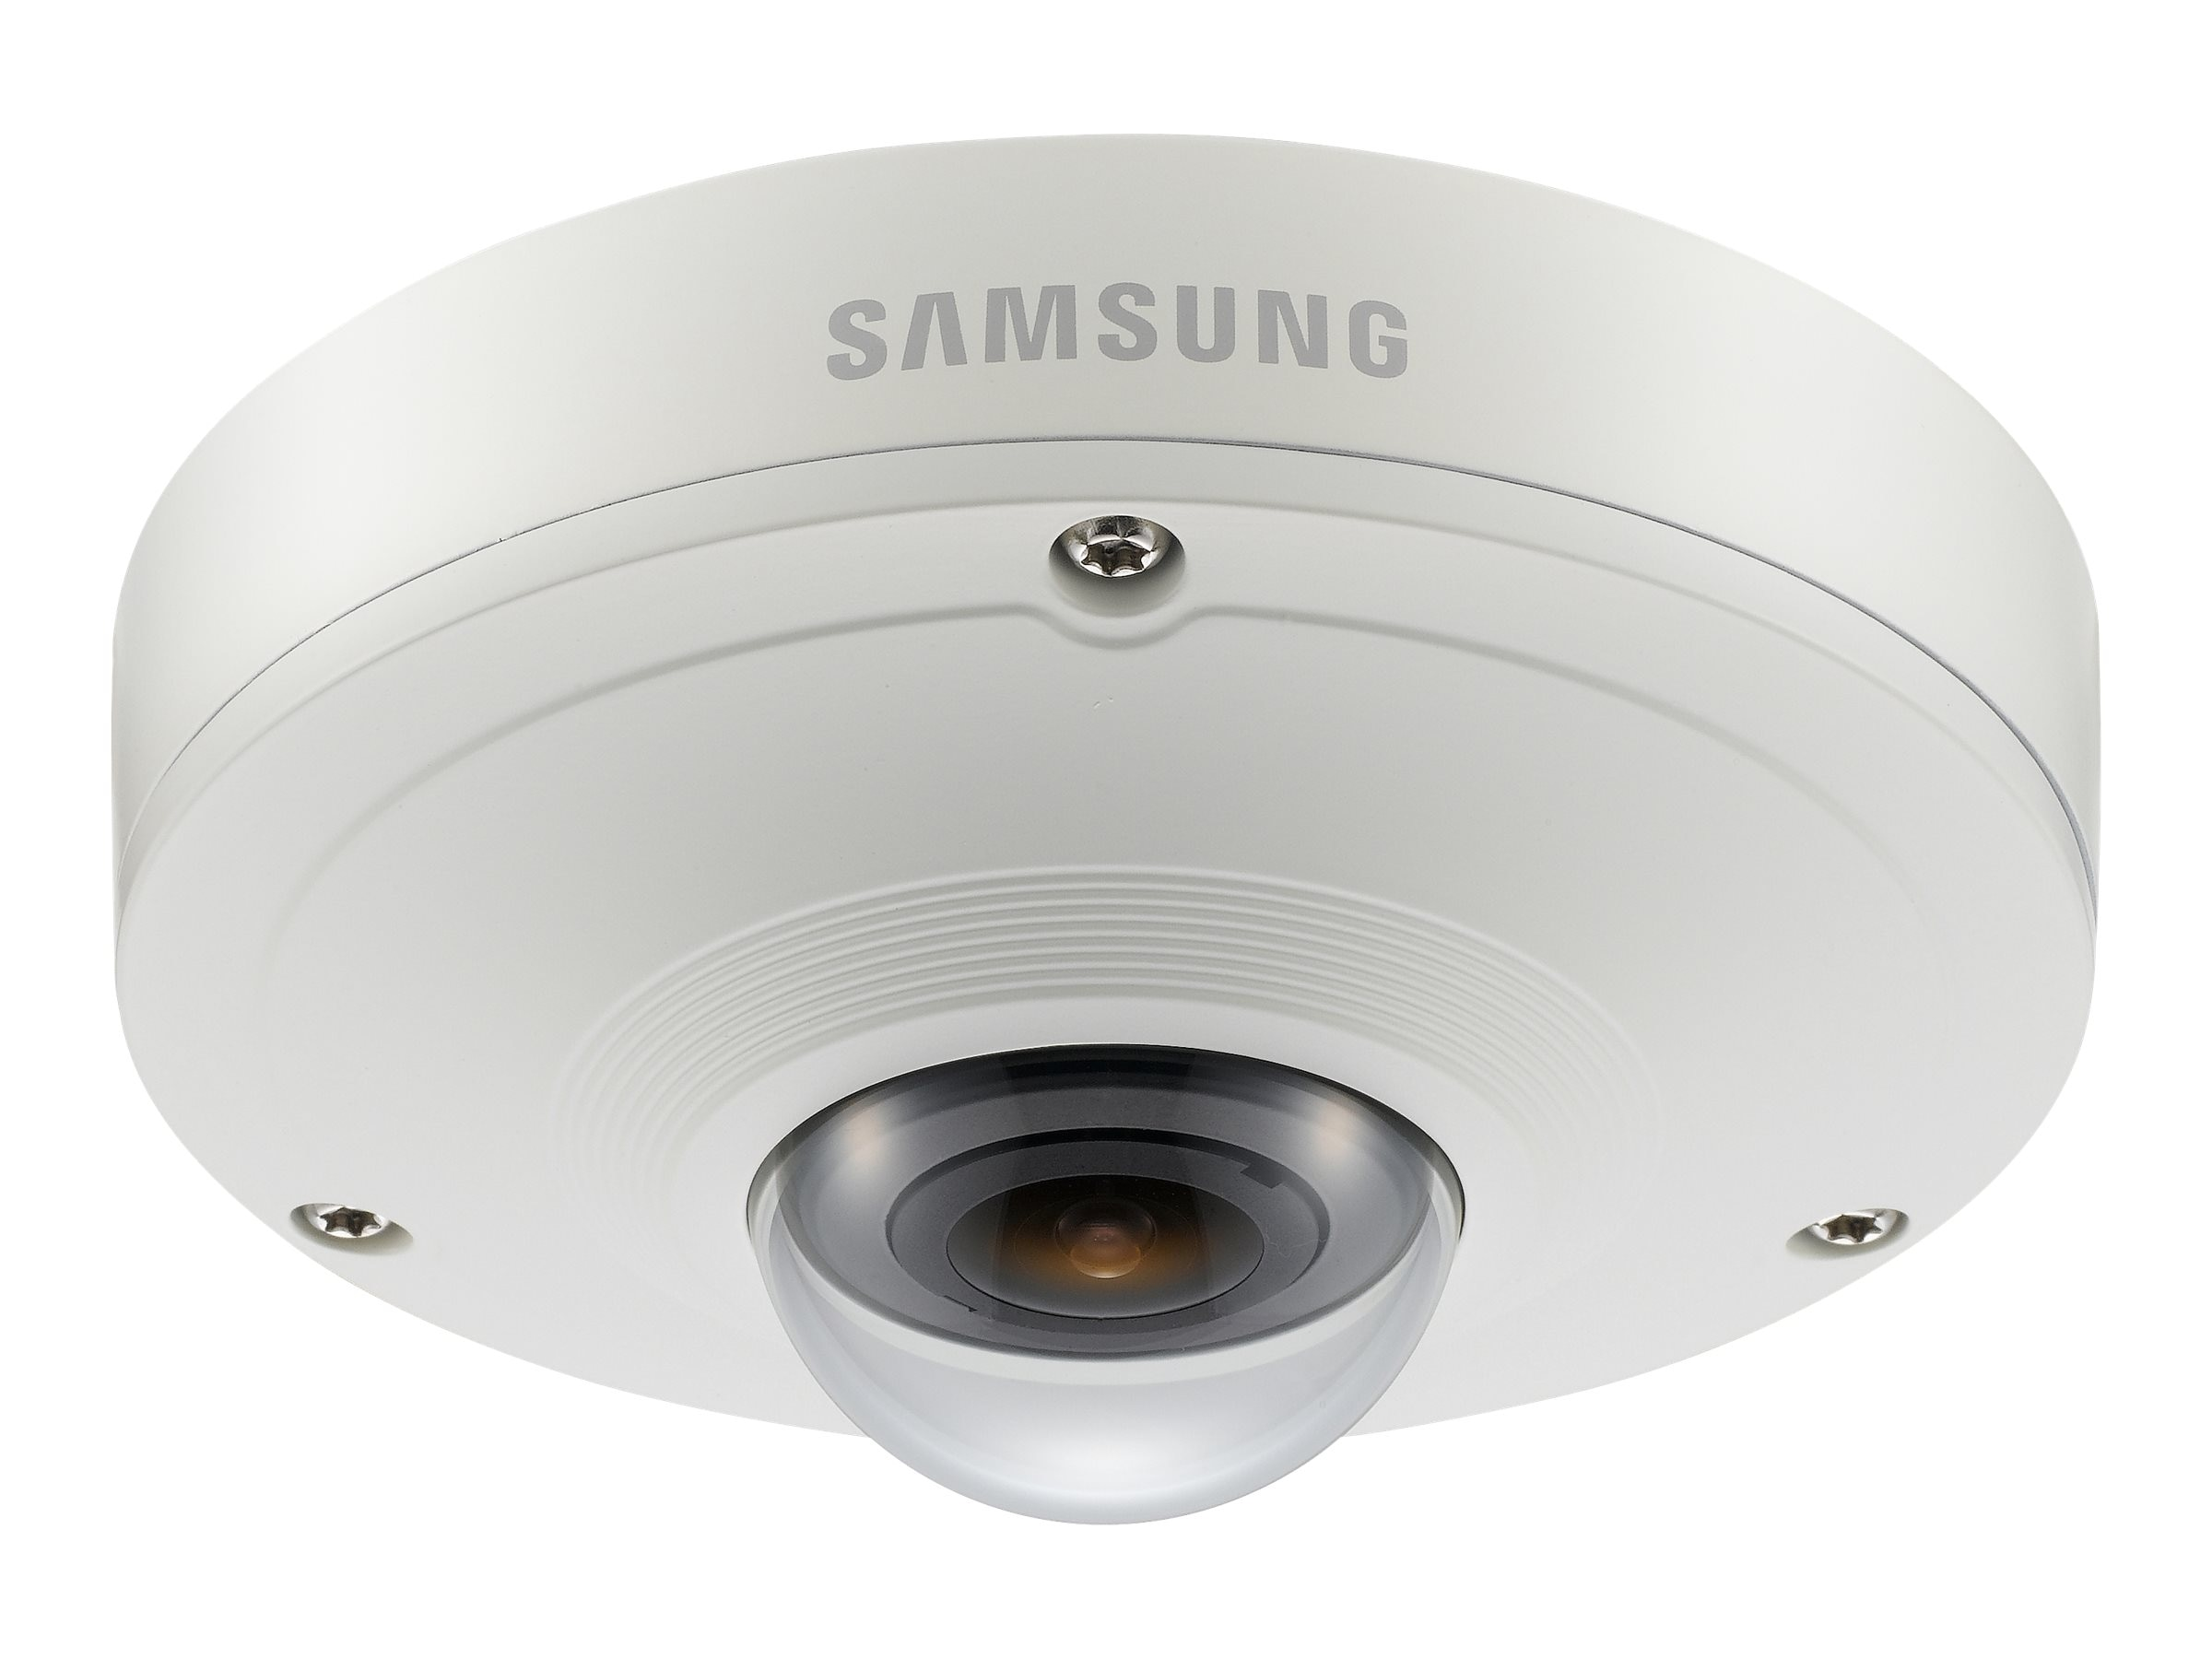 Samsung 5MP 360 Degree Vandal-Mobile Fisheye Camera